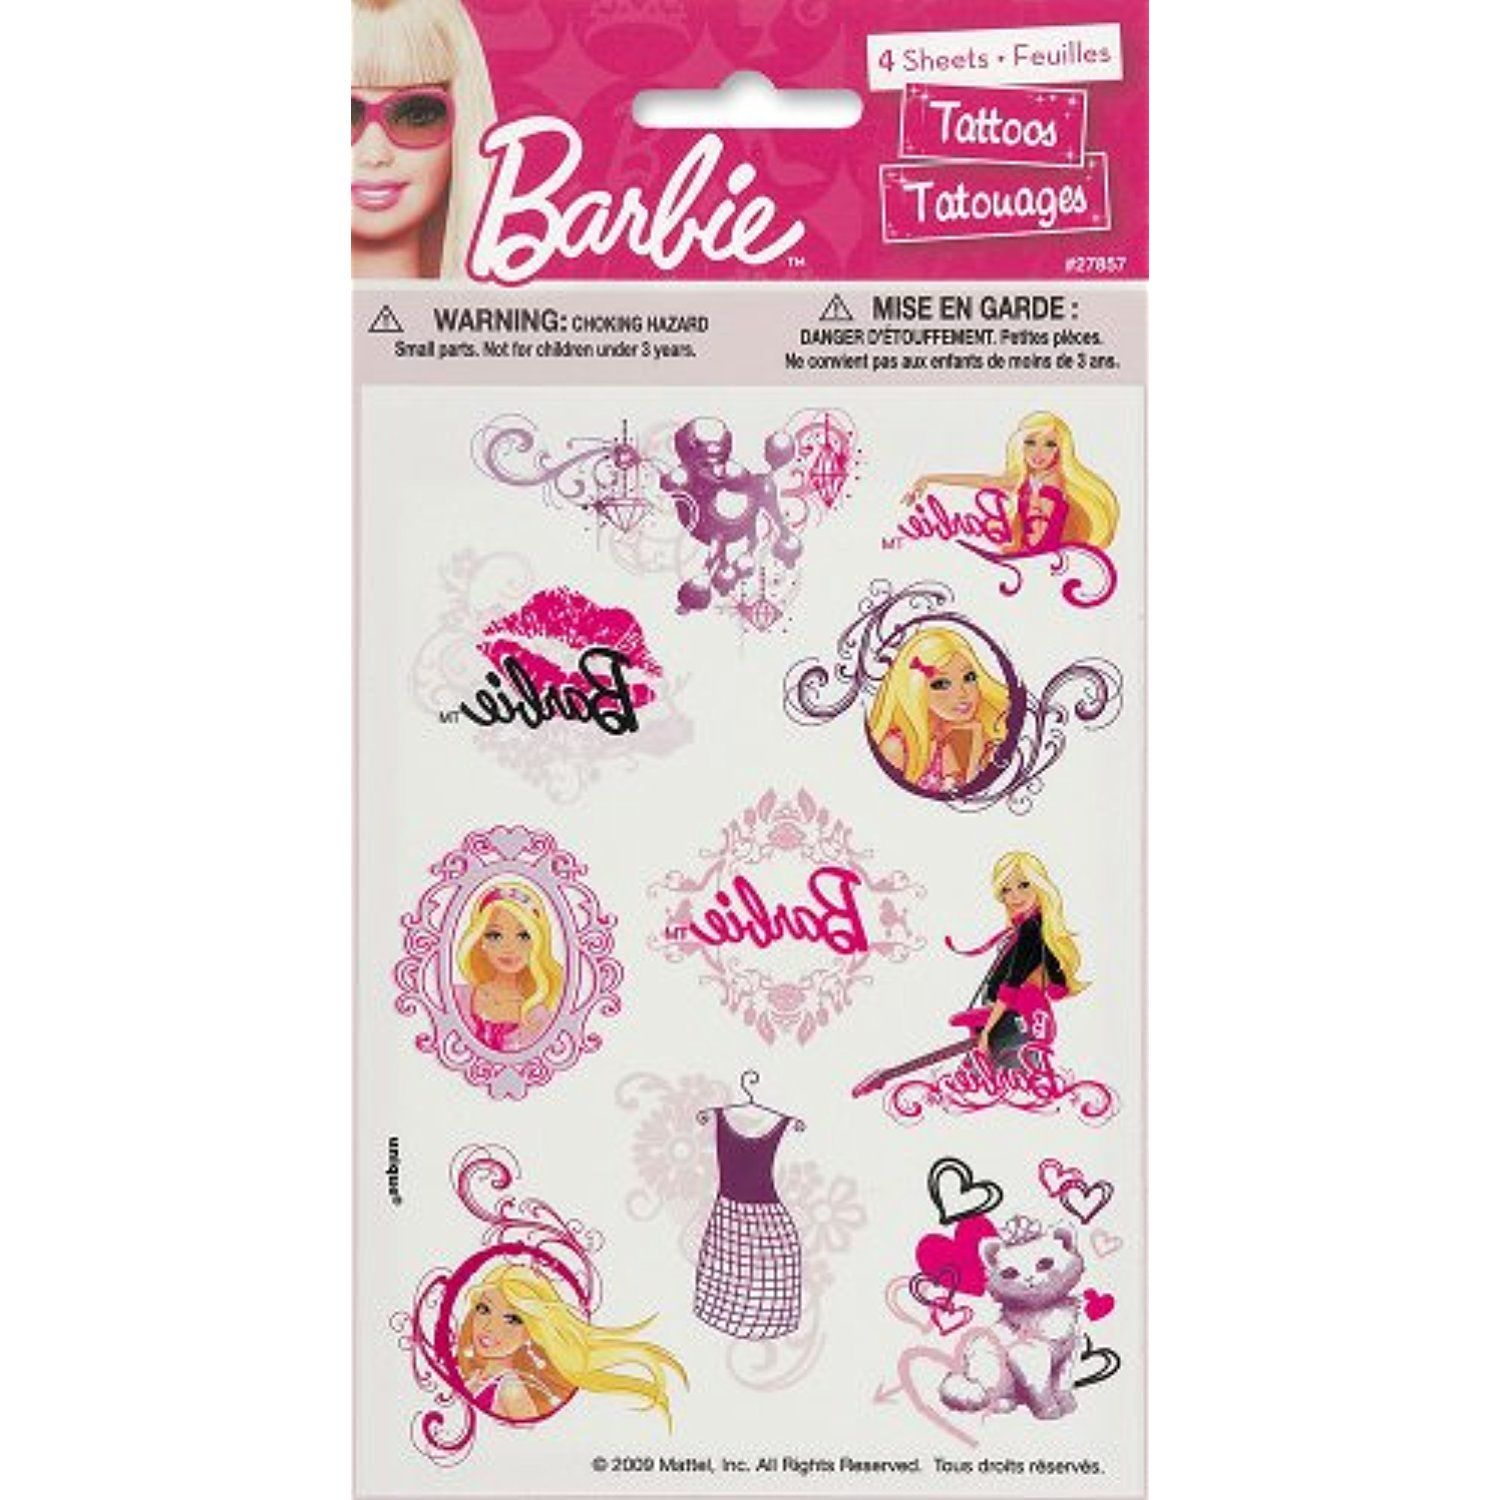 Barbie temporary tattoo sheets 4ct you can get